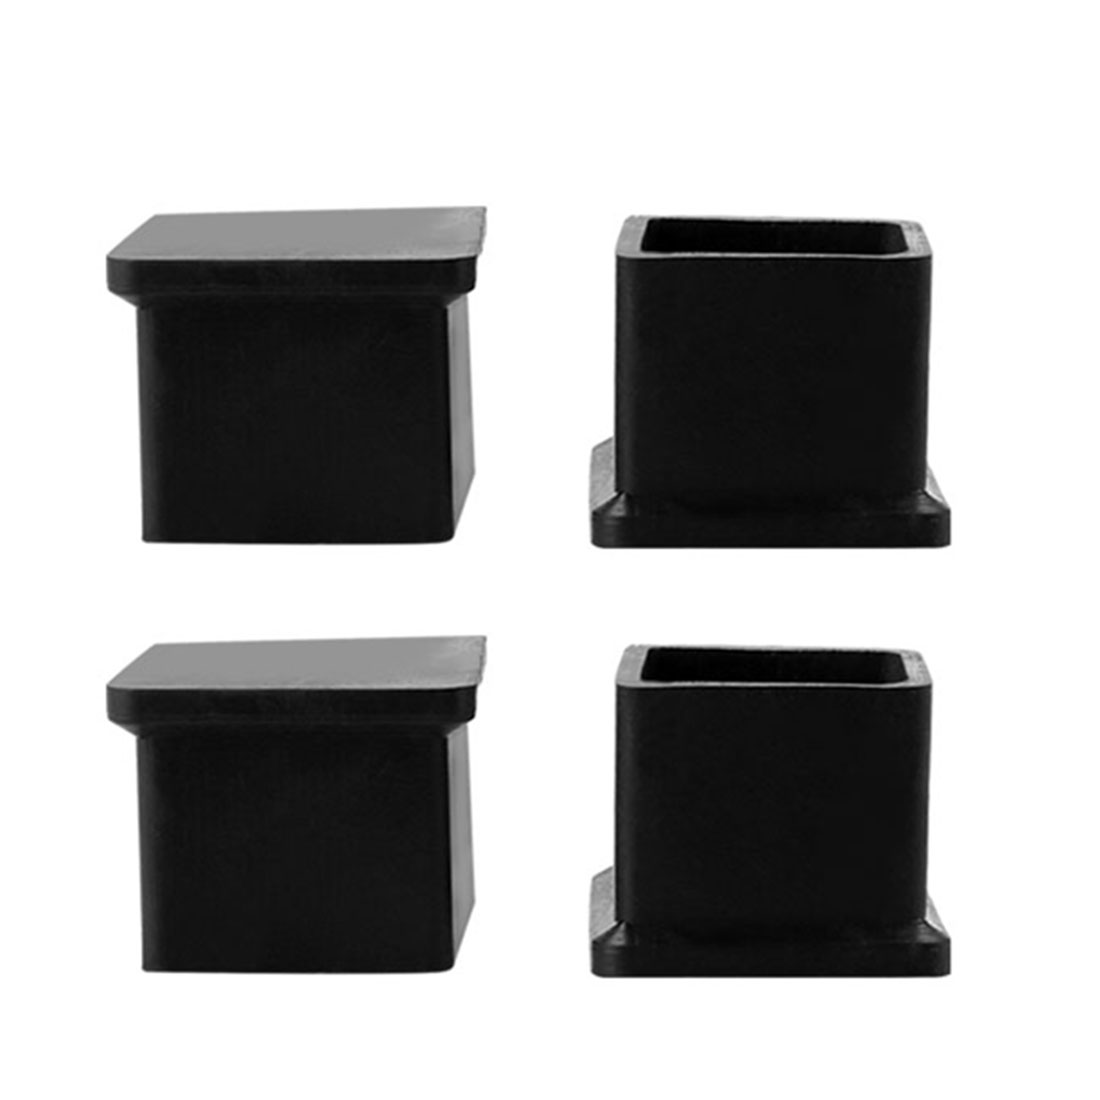 Drawing Room Furniture Desk Table Rubber Square Foot Covers Black 4 Pcs